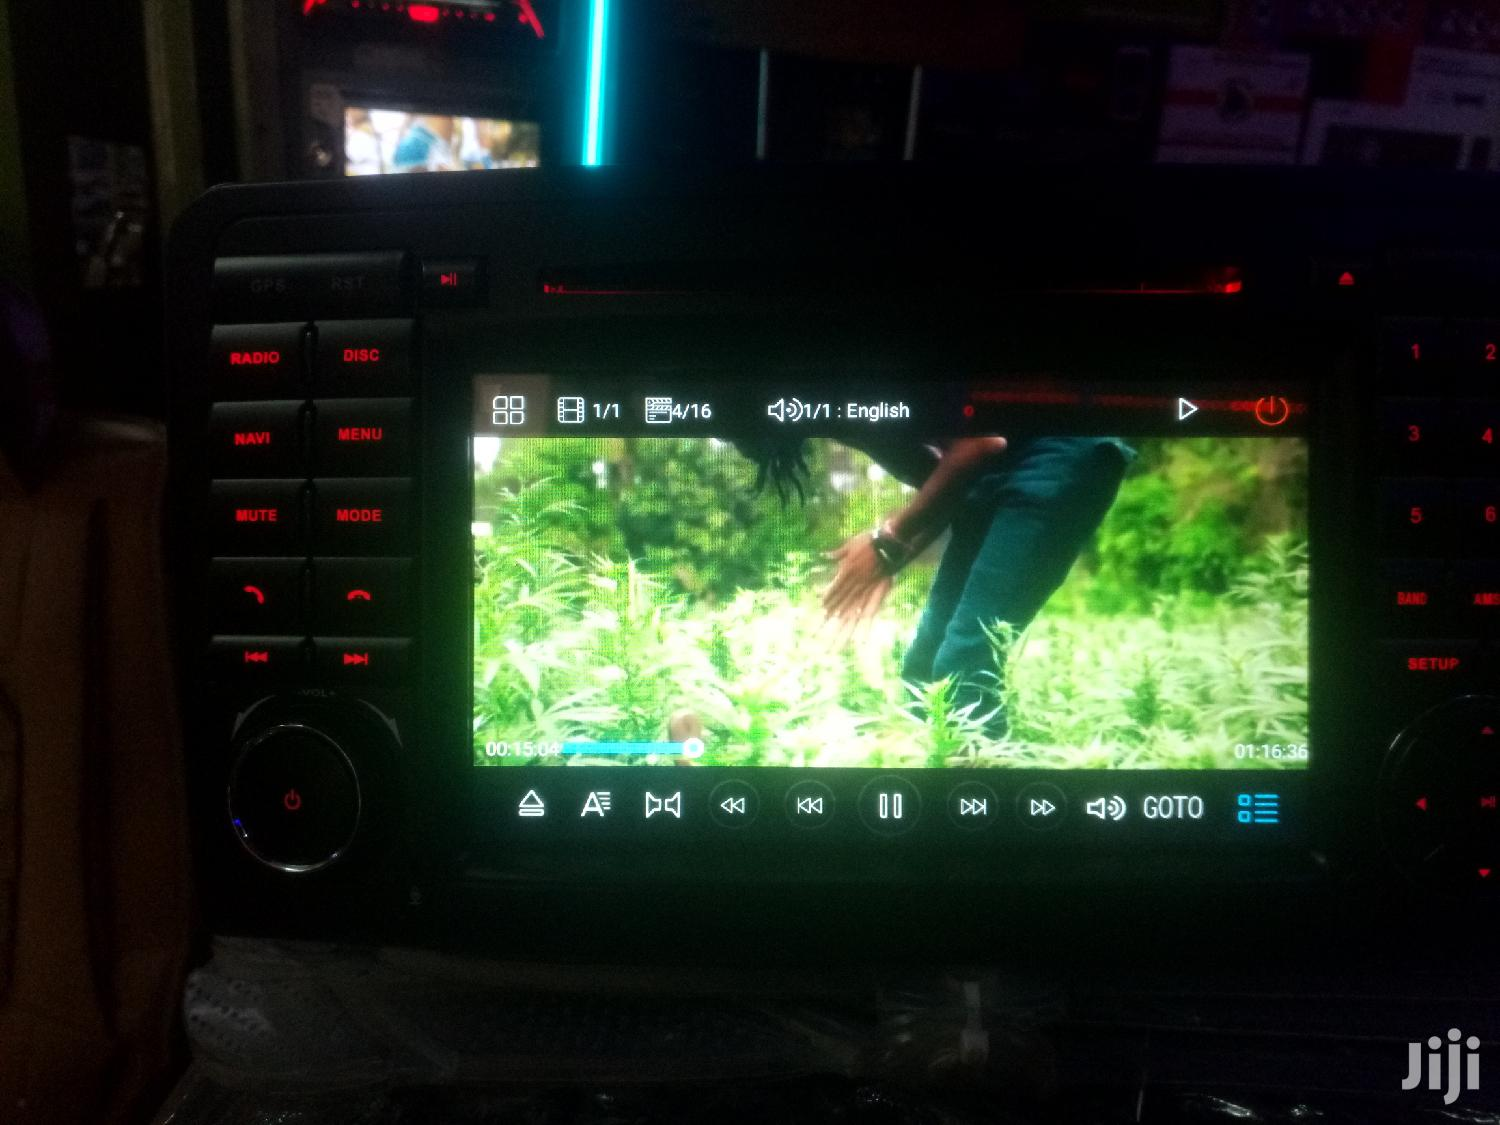 Mercedes Benz W164 4matic Android Radio | Vehicle Parts & Accessories for sale in Kampala, Central Region, Uganda